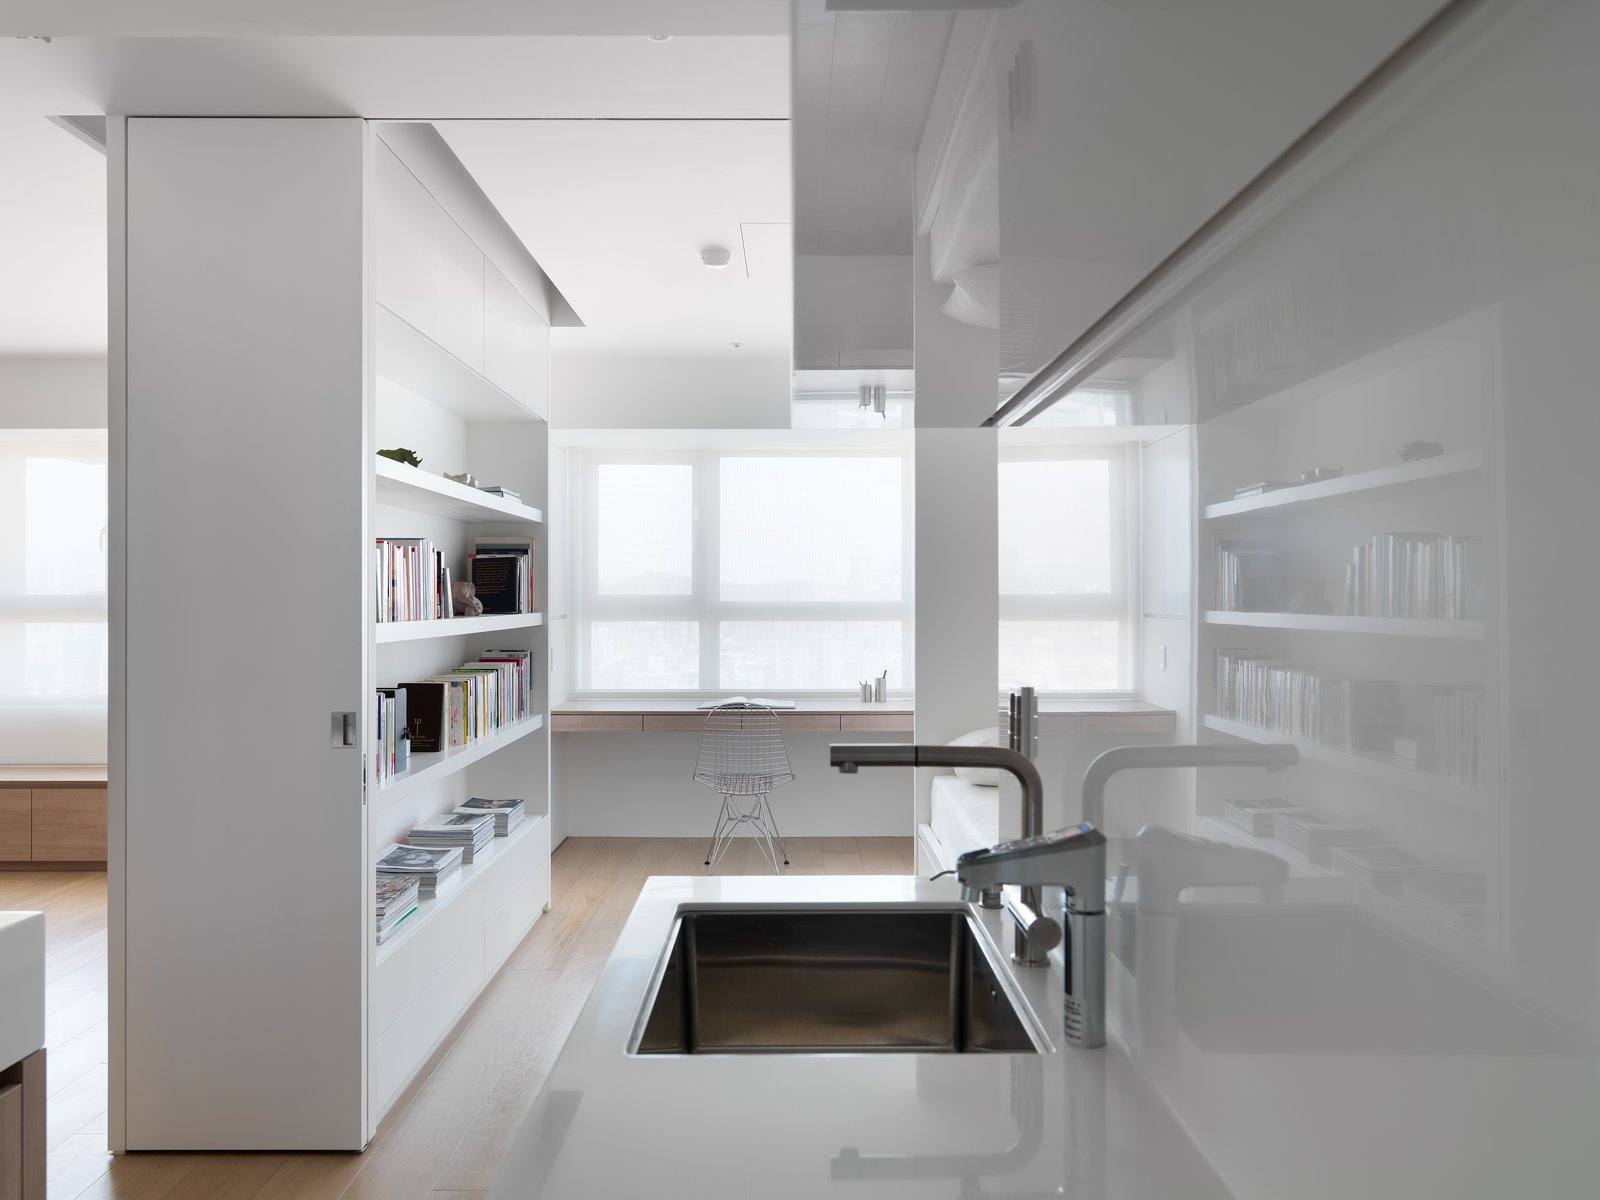 The surface of materials are chosen to meet function, and also add reflection or depth for the space.